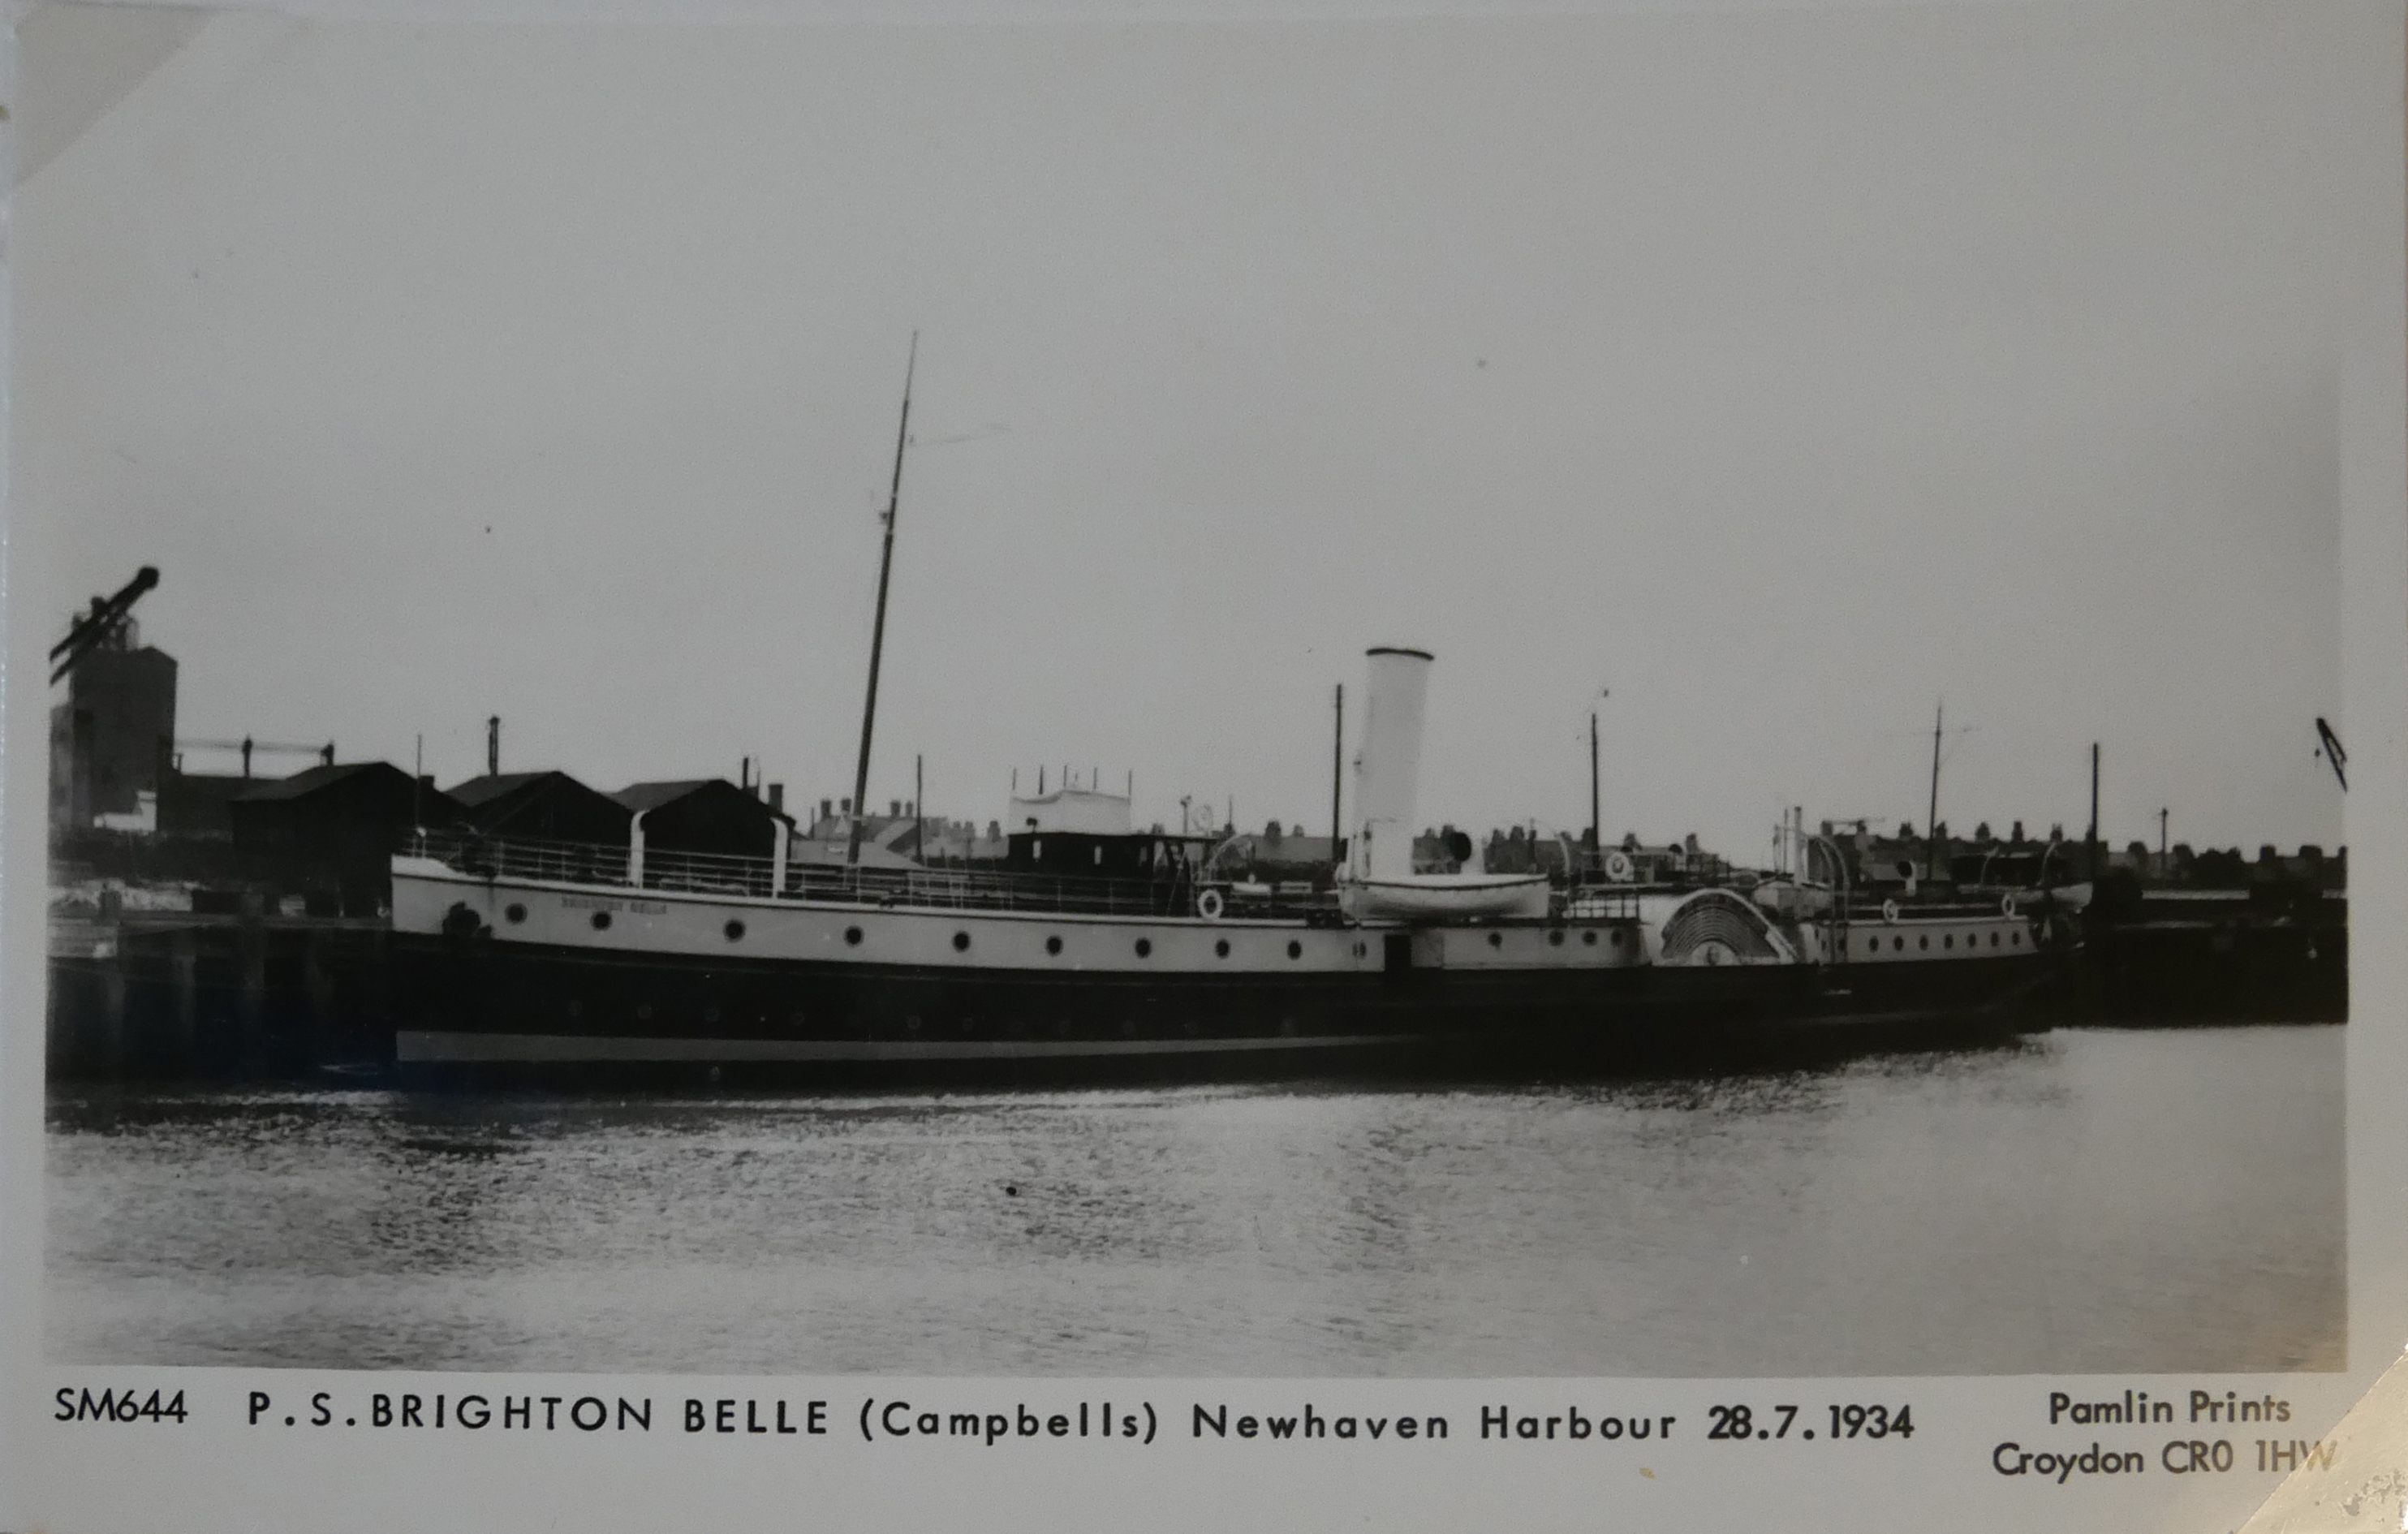 AN ALBUM OF BLACK AND WHITE PHOTOGRAPHIC POSTCARDS OF STEAM SHIPS Issued by Pamlin Prints, including - Image 9 of 10